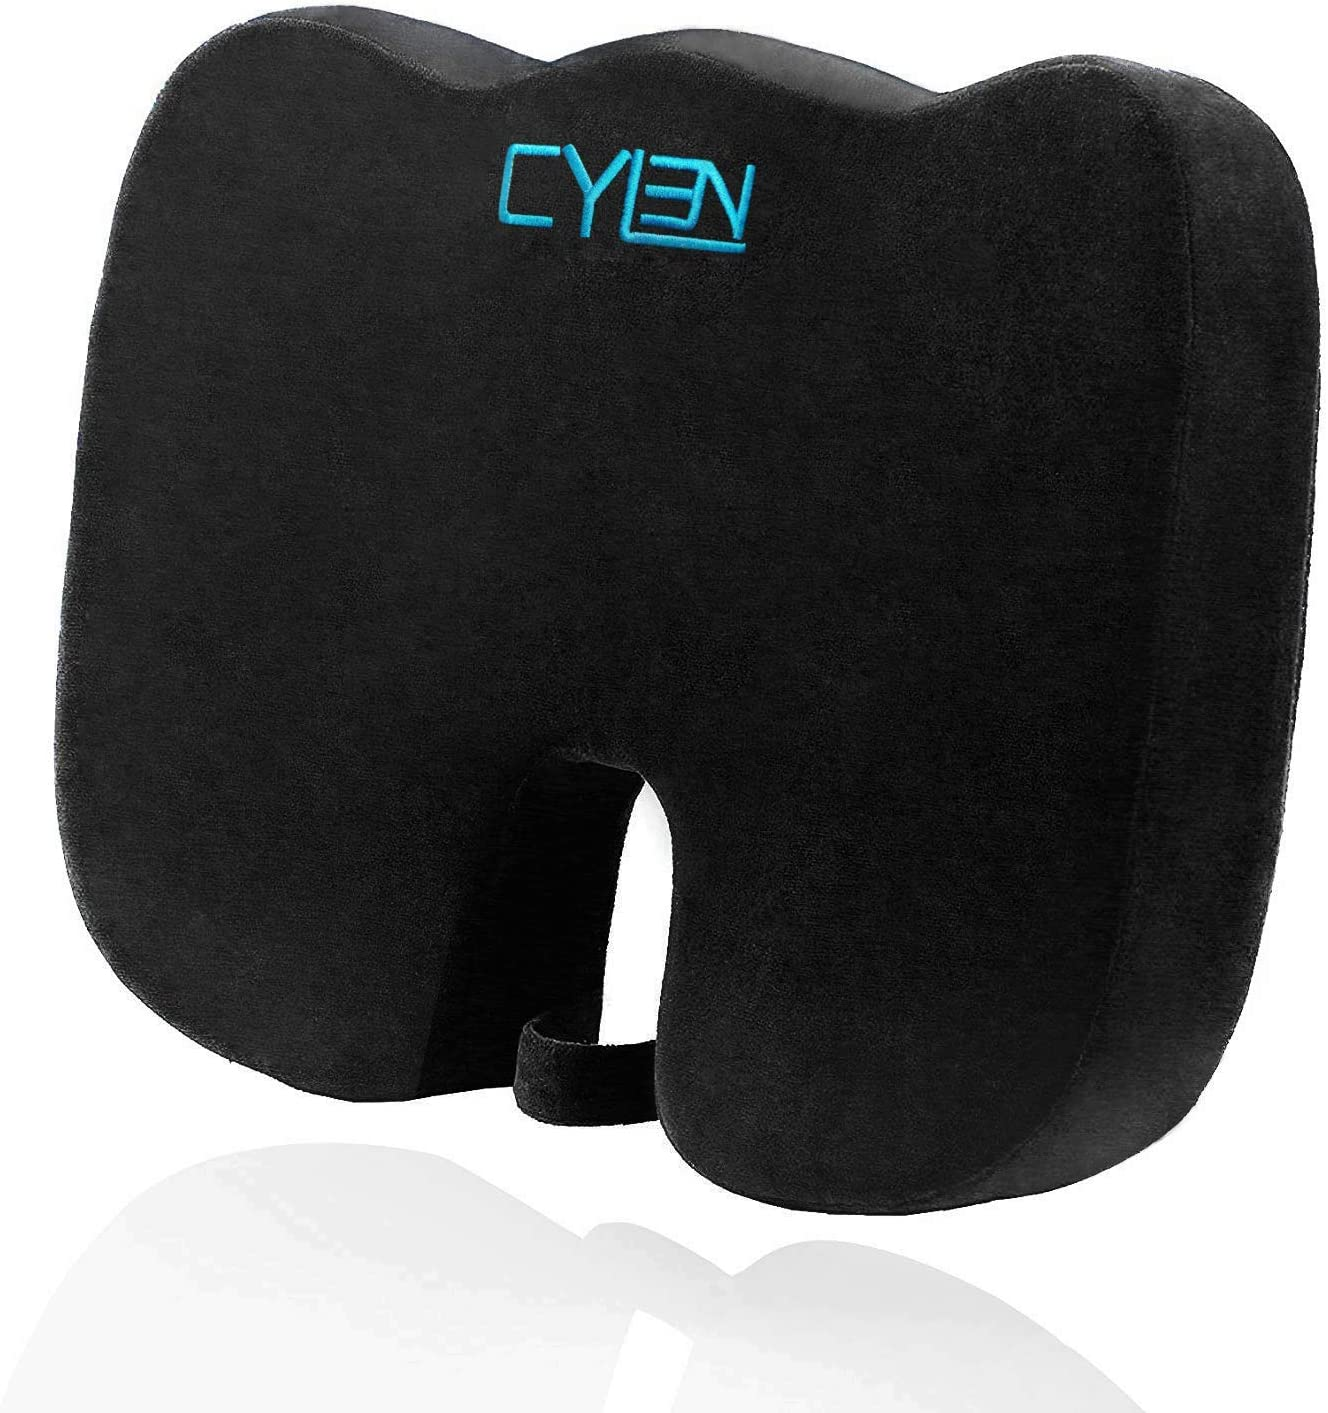 CYLEN Home-Memory Foam Bamboo Charcoal Infused Ventilated Orthopedic Seat Cushion for Car and Wheelchair - Washable & Breathable Cover (Black) 71vksV0YJDL